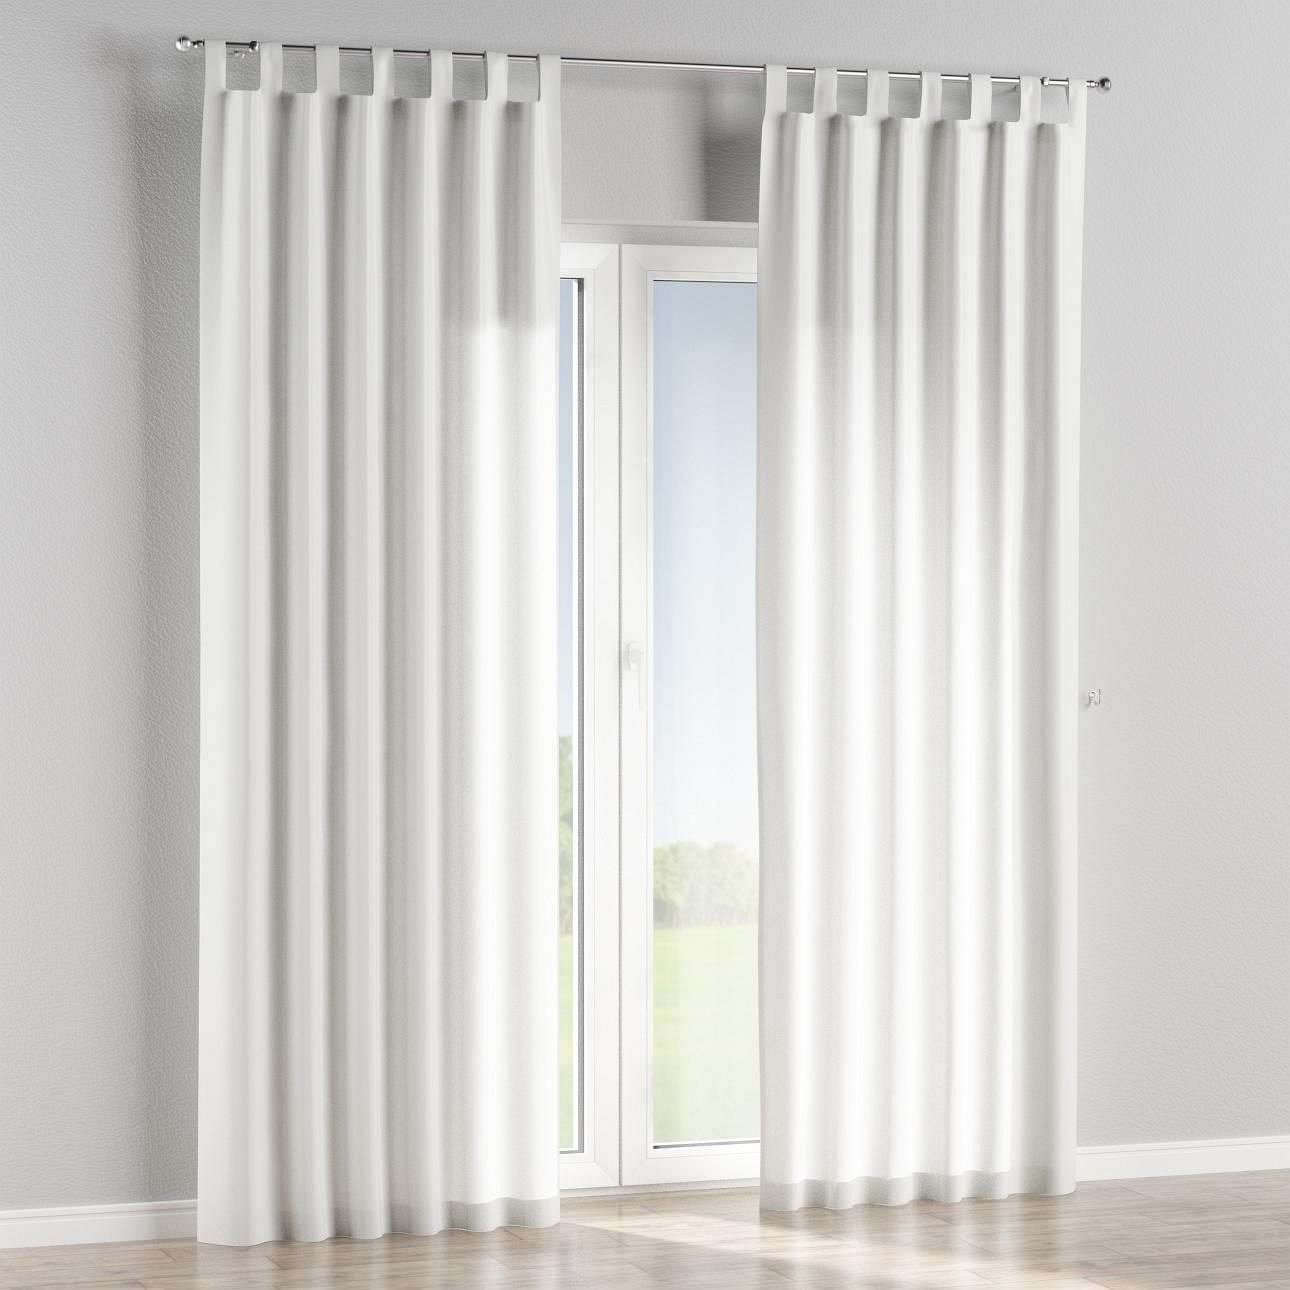 Tab top curtains in collection Rustica, fabric: 138-13